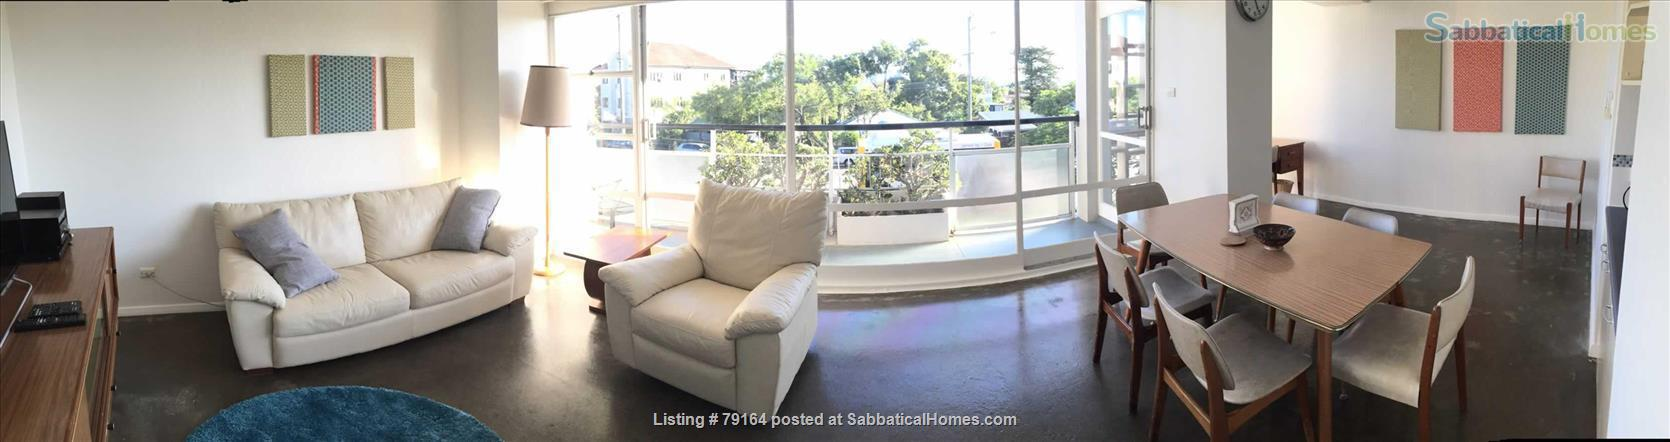 Brisbane apartment- Highgate Hill, Fully furnished 2Bed+study/3rd bedroom in Heritage listed Torbreck, Excellent access to UQ, QUT, Southbank and Hospitals Home Rental in Highgate Hill, QLD, Australia 1